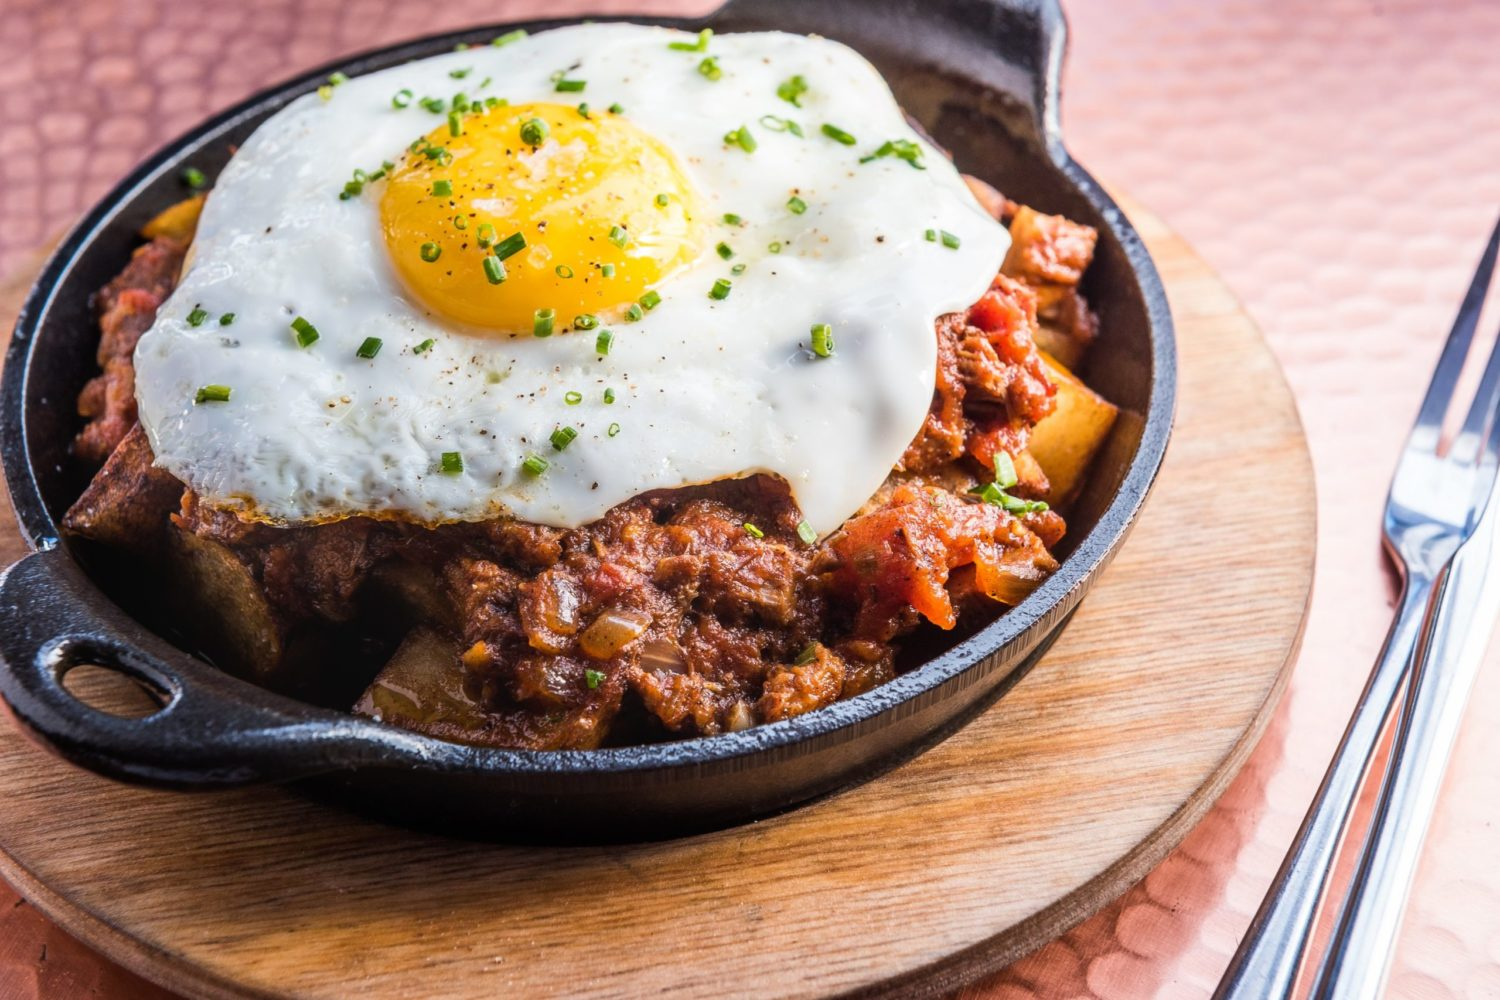 Brisket Chili Hash at America Eats Tavern. Photograph by Rey Lopez.